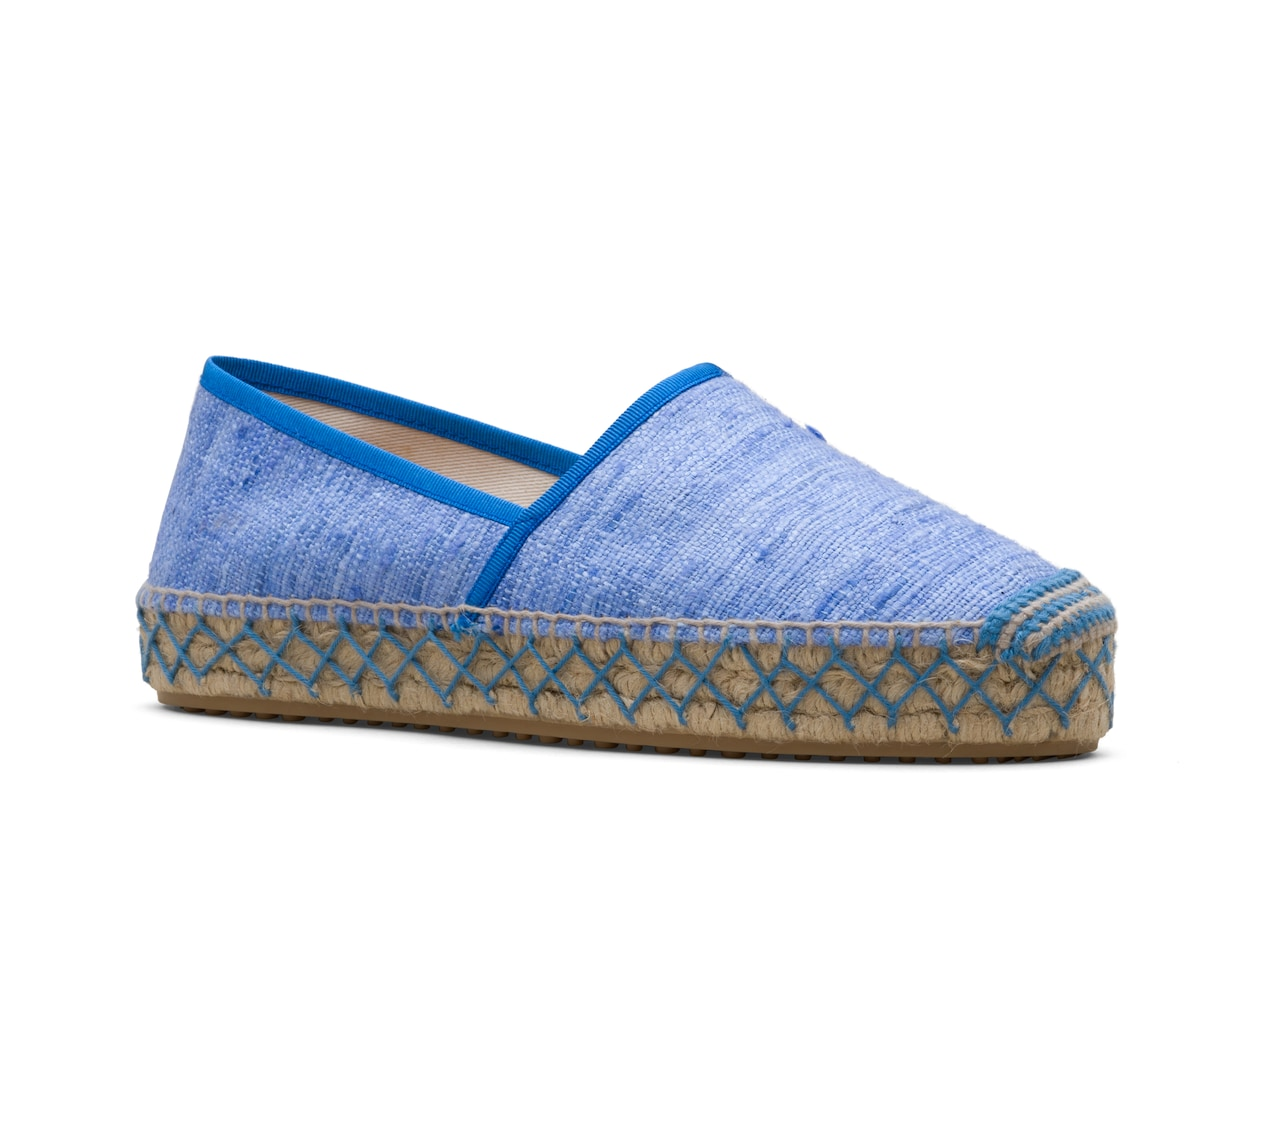 ESPADRILLAS IN UNLINED RAW SILK BLUE